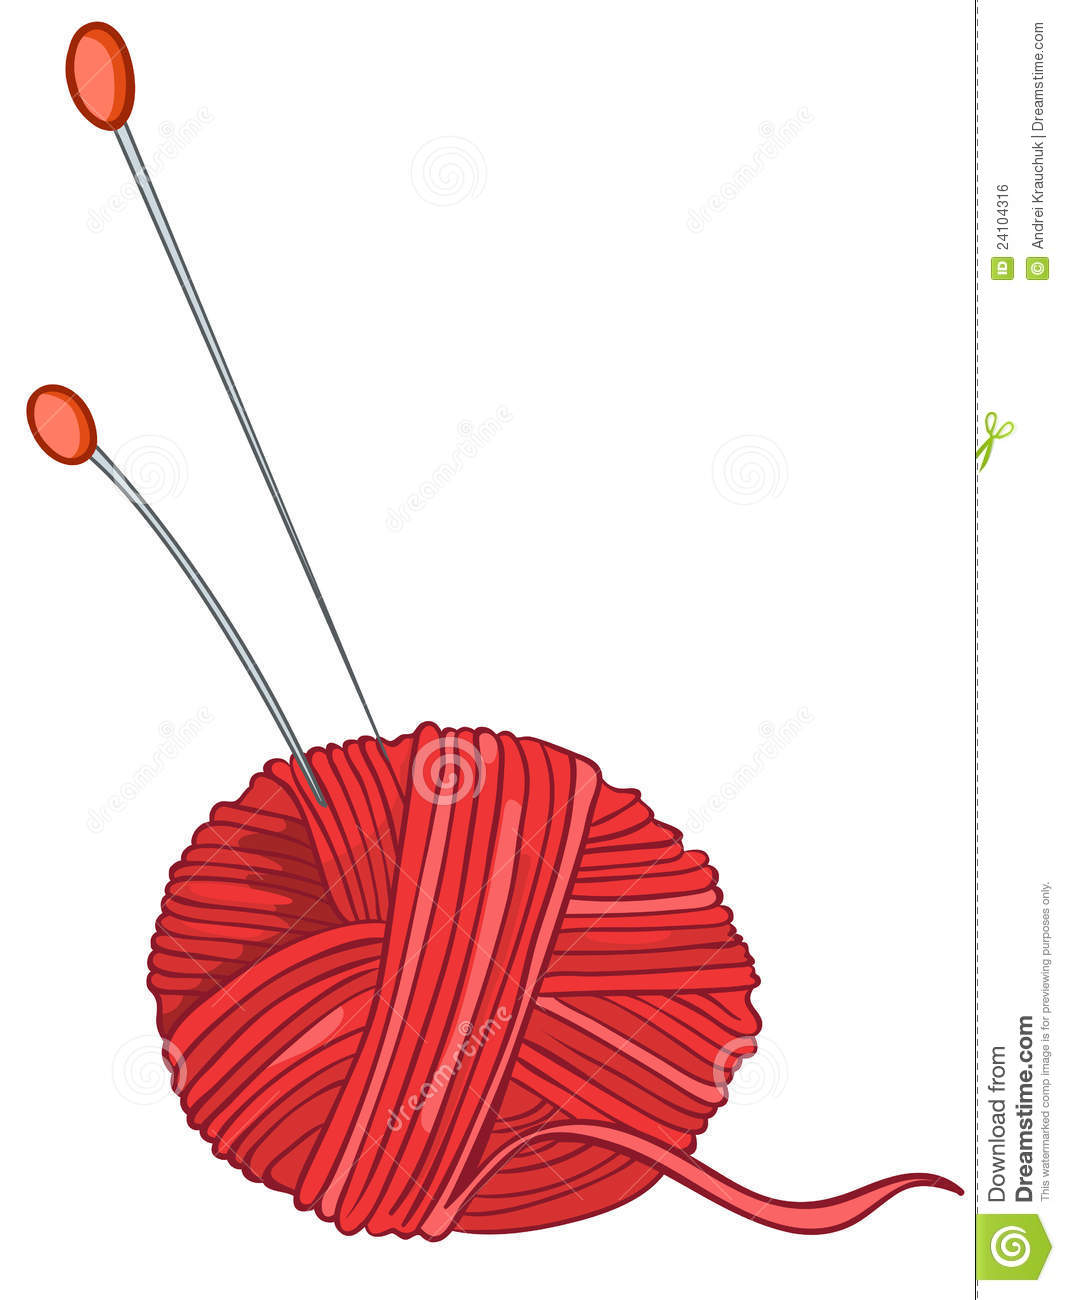 Cartoon Knitting Needles : Cartoon home miscellaneous knitting thread royalty free